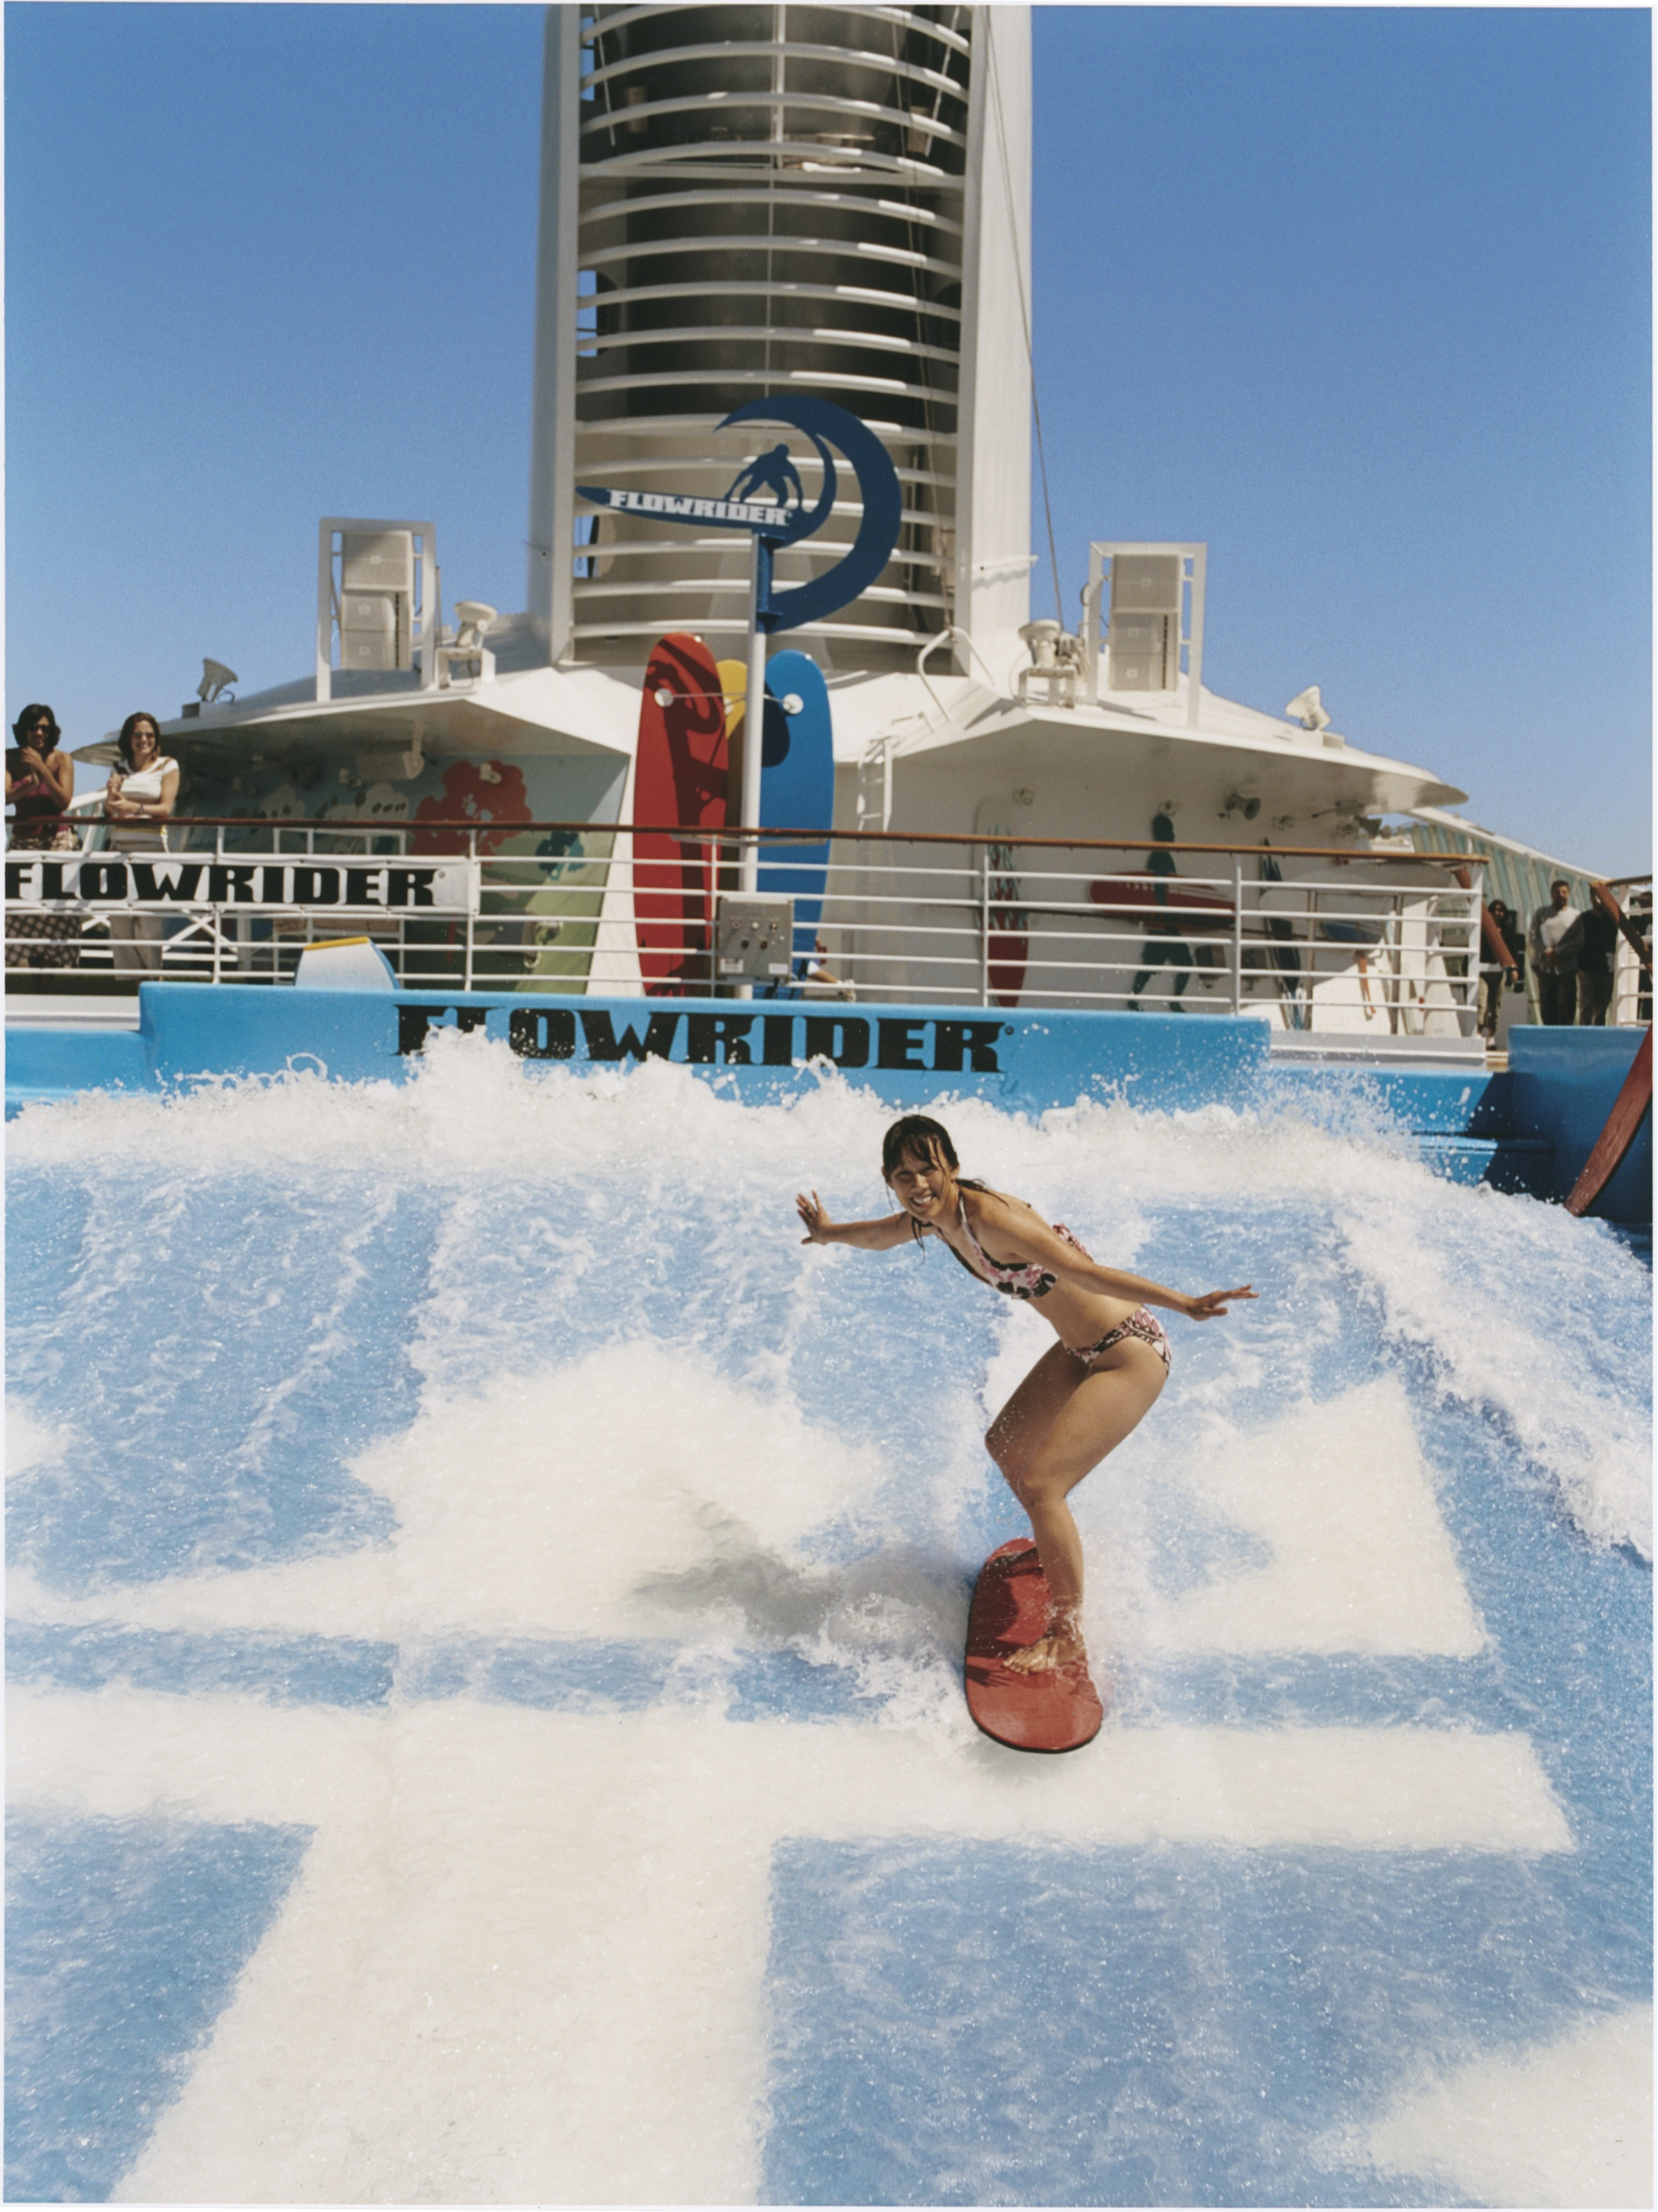 Royal Caribbean International Freedom of the Seas Exterior Flowrider 8.jpeg